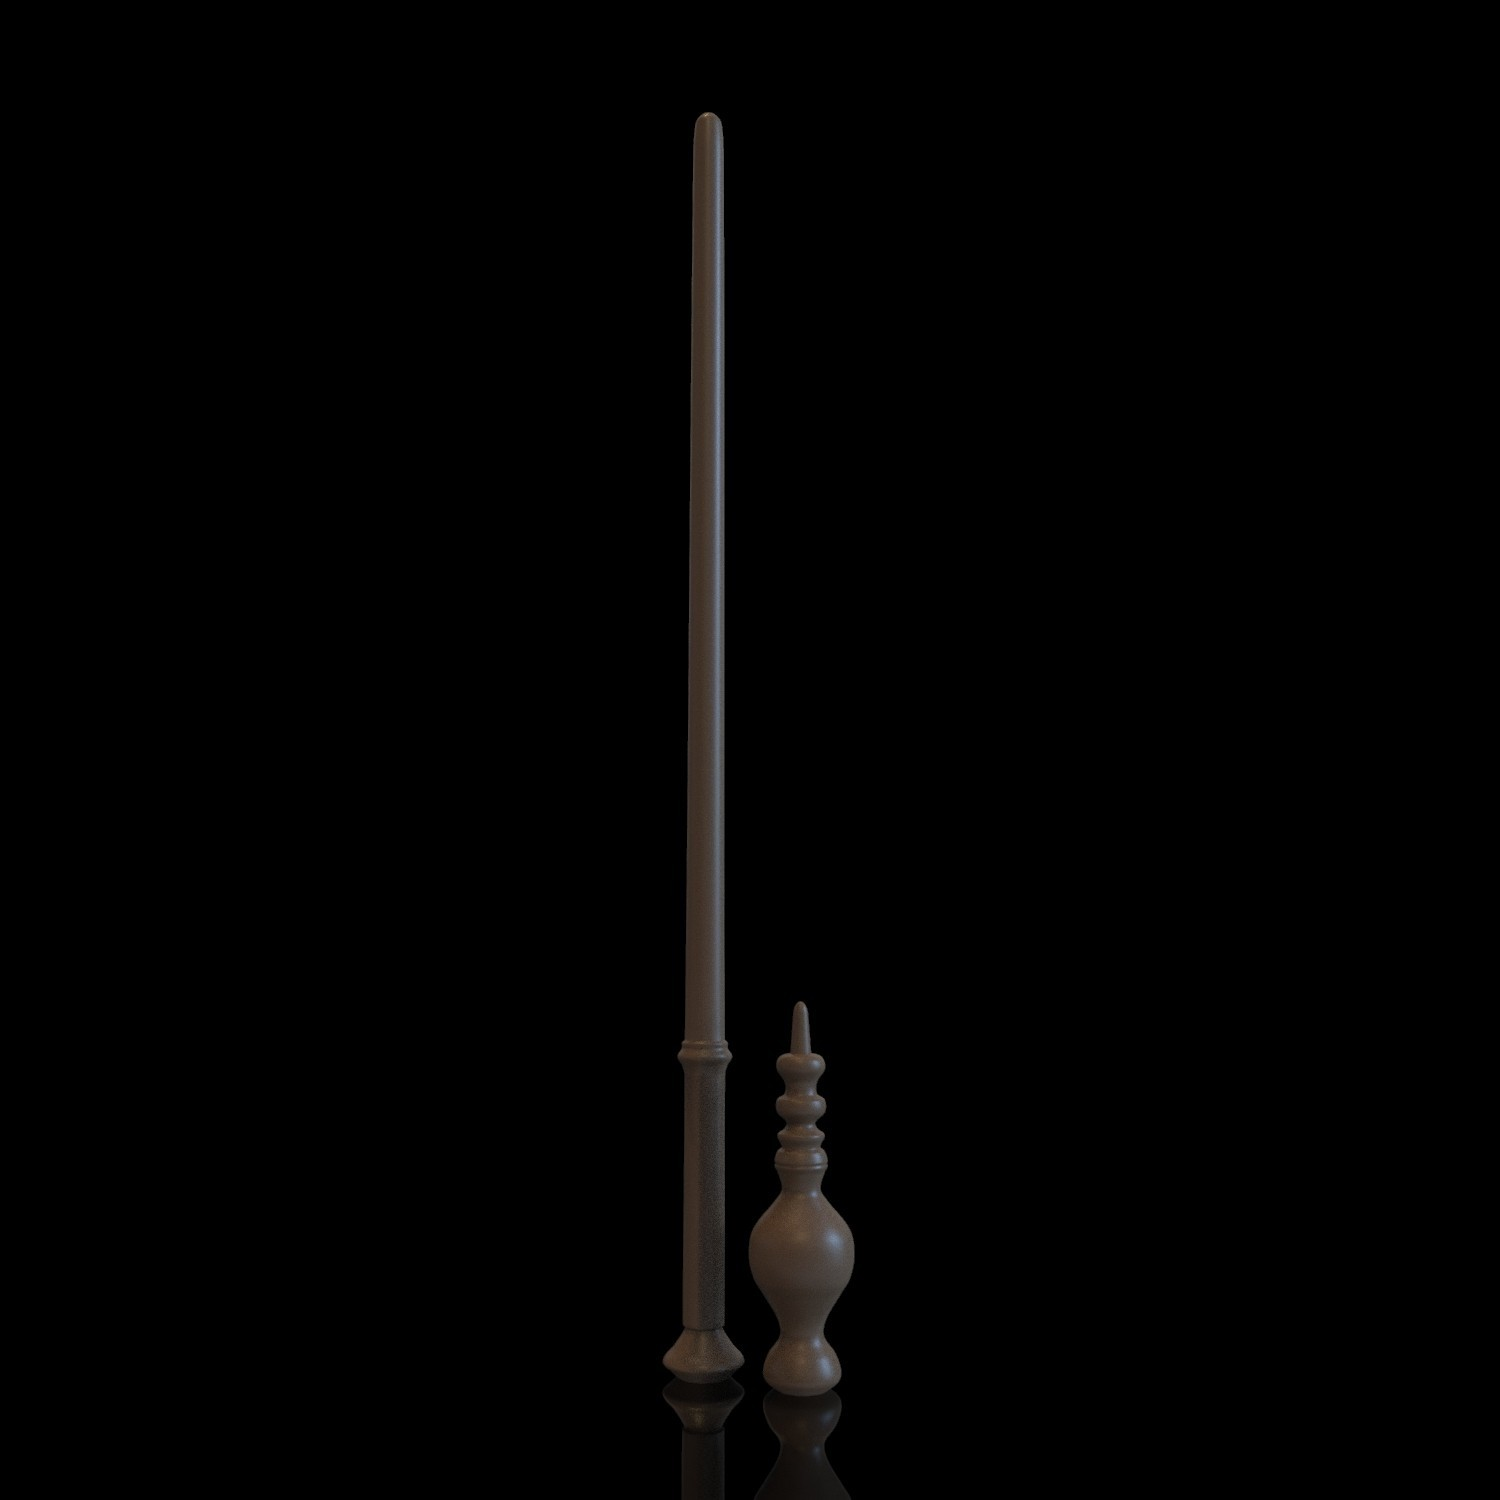 6.jpg Download OBJ file MINERVA MCGONAGALL WAND - HARRY POTTER • 3D printer design, tolgaaxu